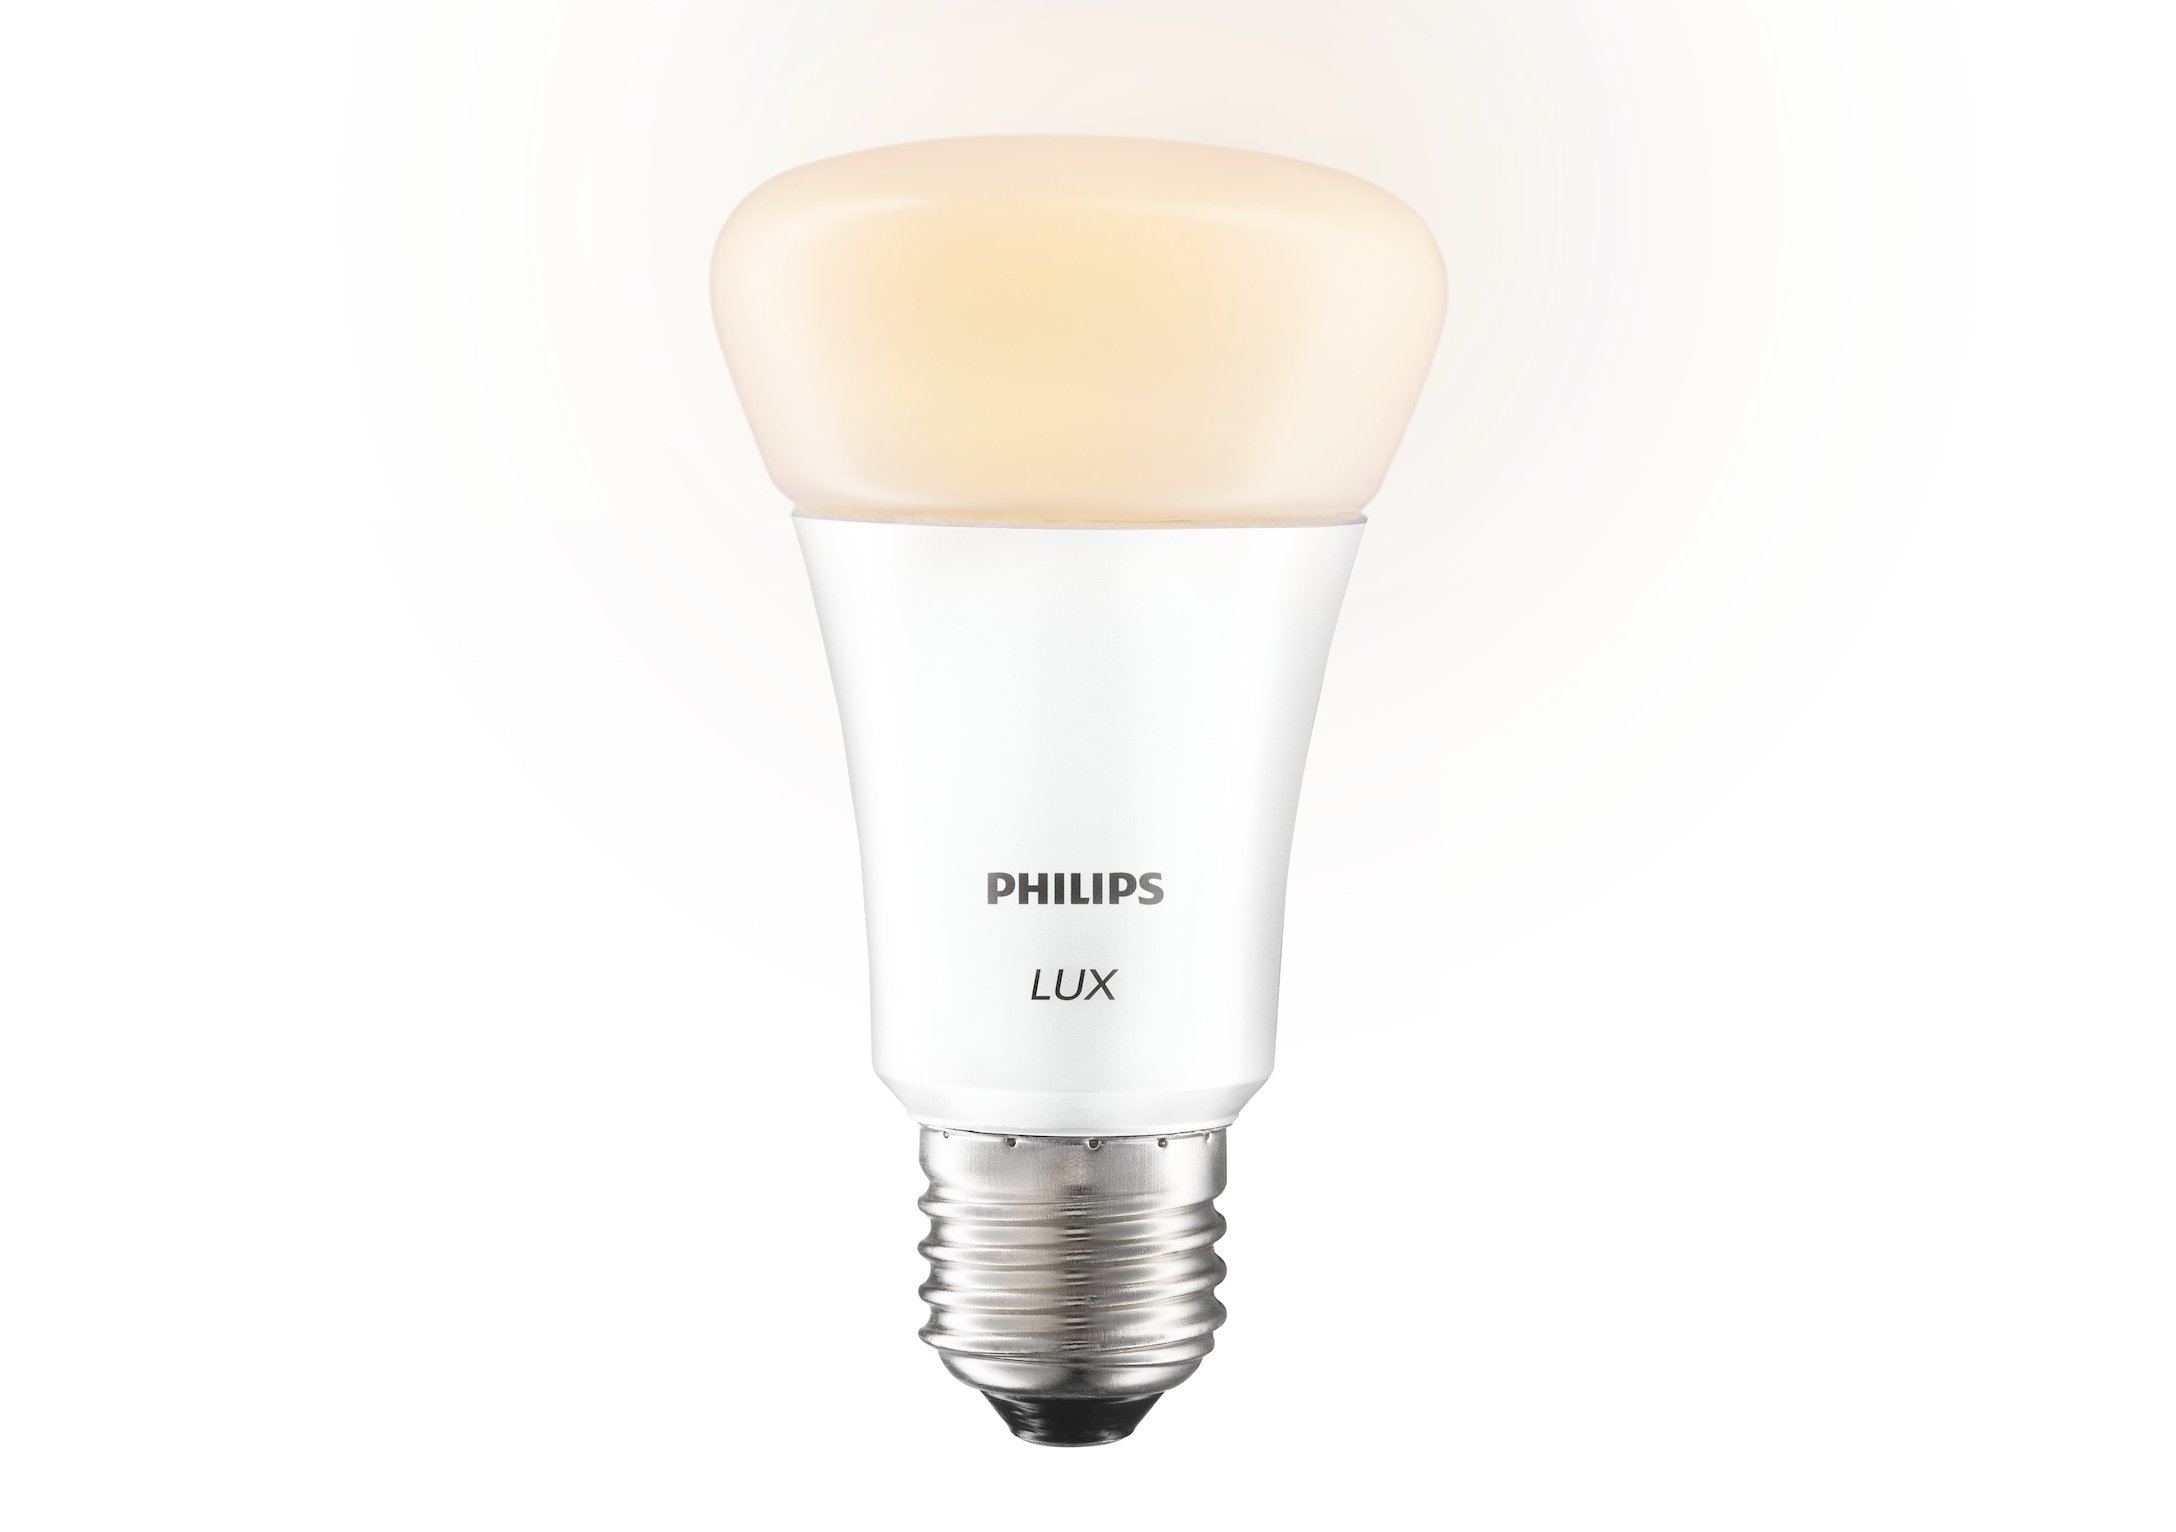 Philips 433706 Hue Lux Starter Kit, 2 Bulbs and 1 Bridge, 60W Equivalent A19 LED, 1st Generation